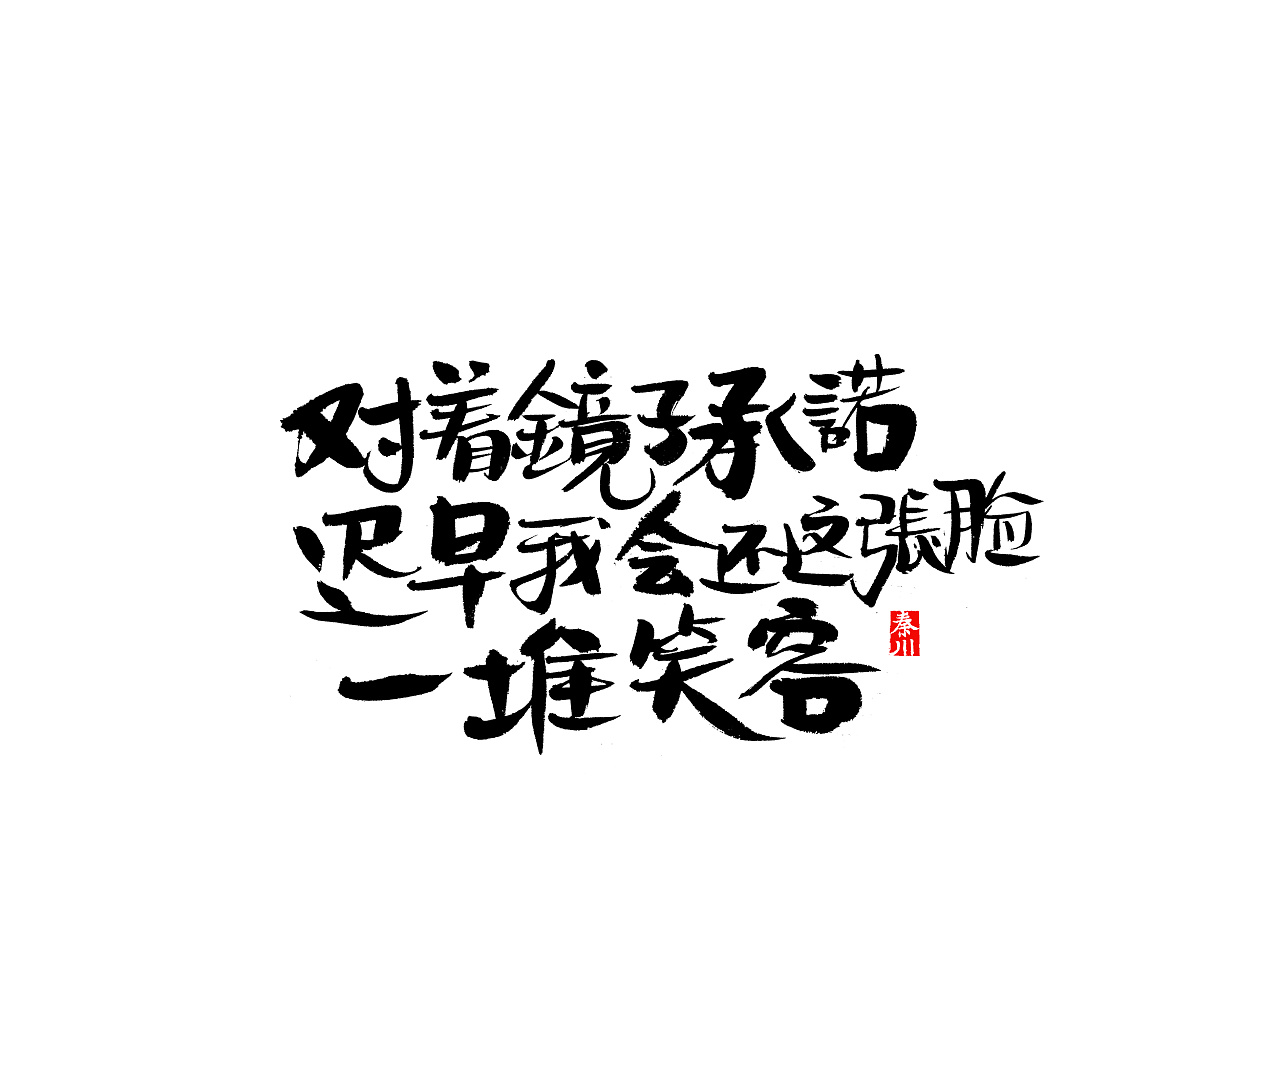 chinesefontdesign.com 2018 04 26 05 39 28 189701 35P Chinese traditional calligraphy brush calligraphy font style appreciation #161